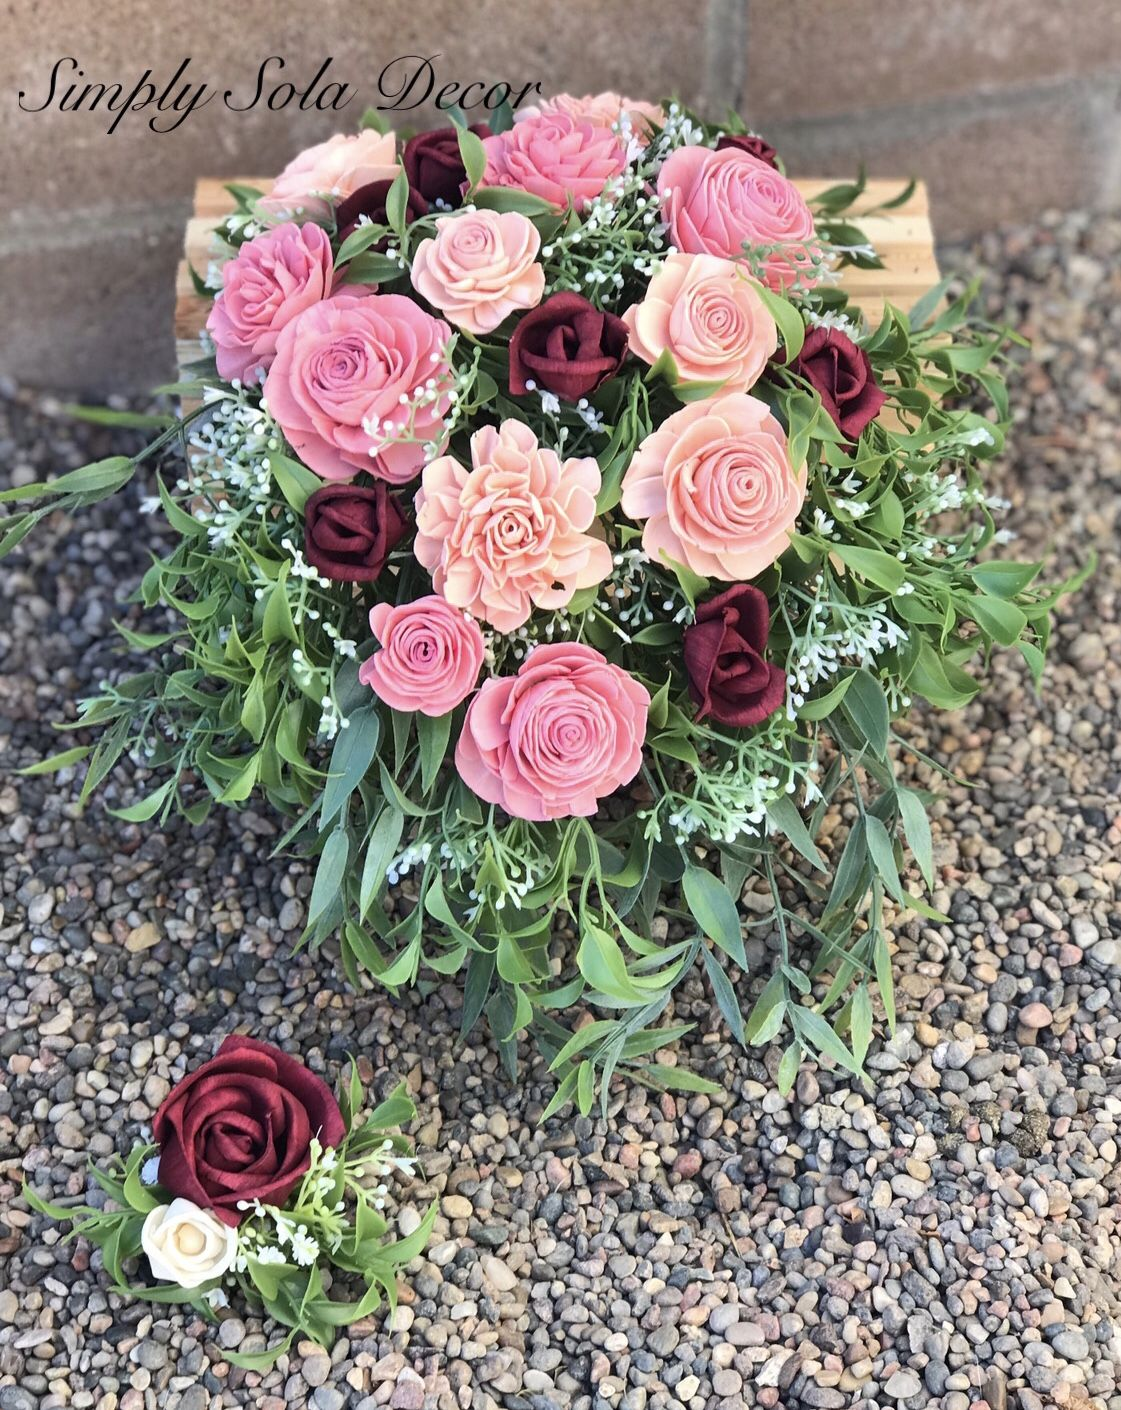 Wood flower roses painted in spring colors for an outdoor